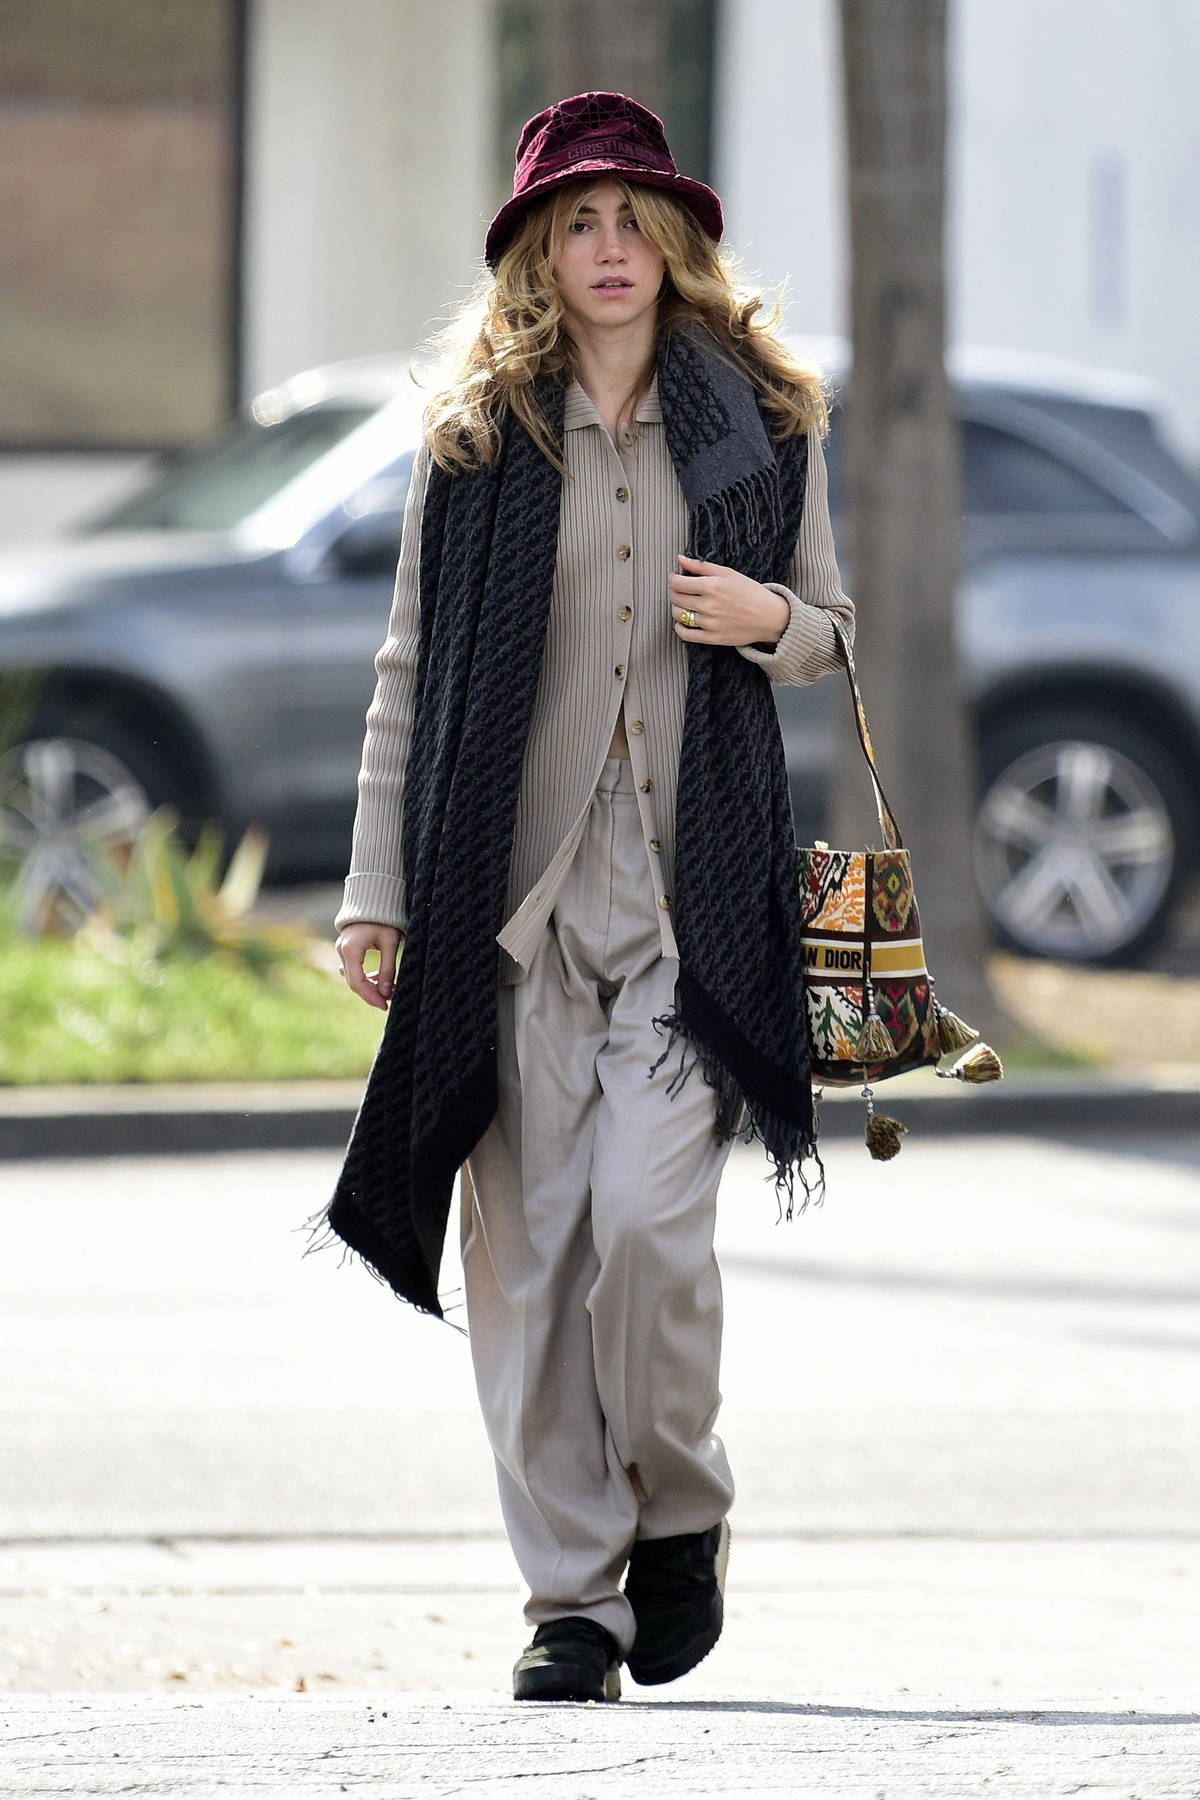 Suki Waterhouse looks casually chic while stepping out in West Hollywood, California